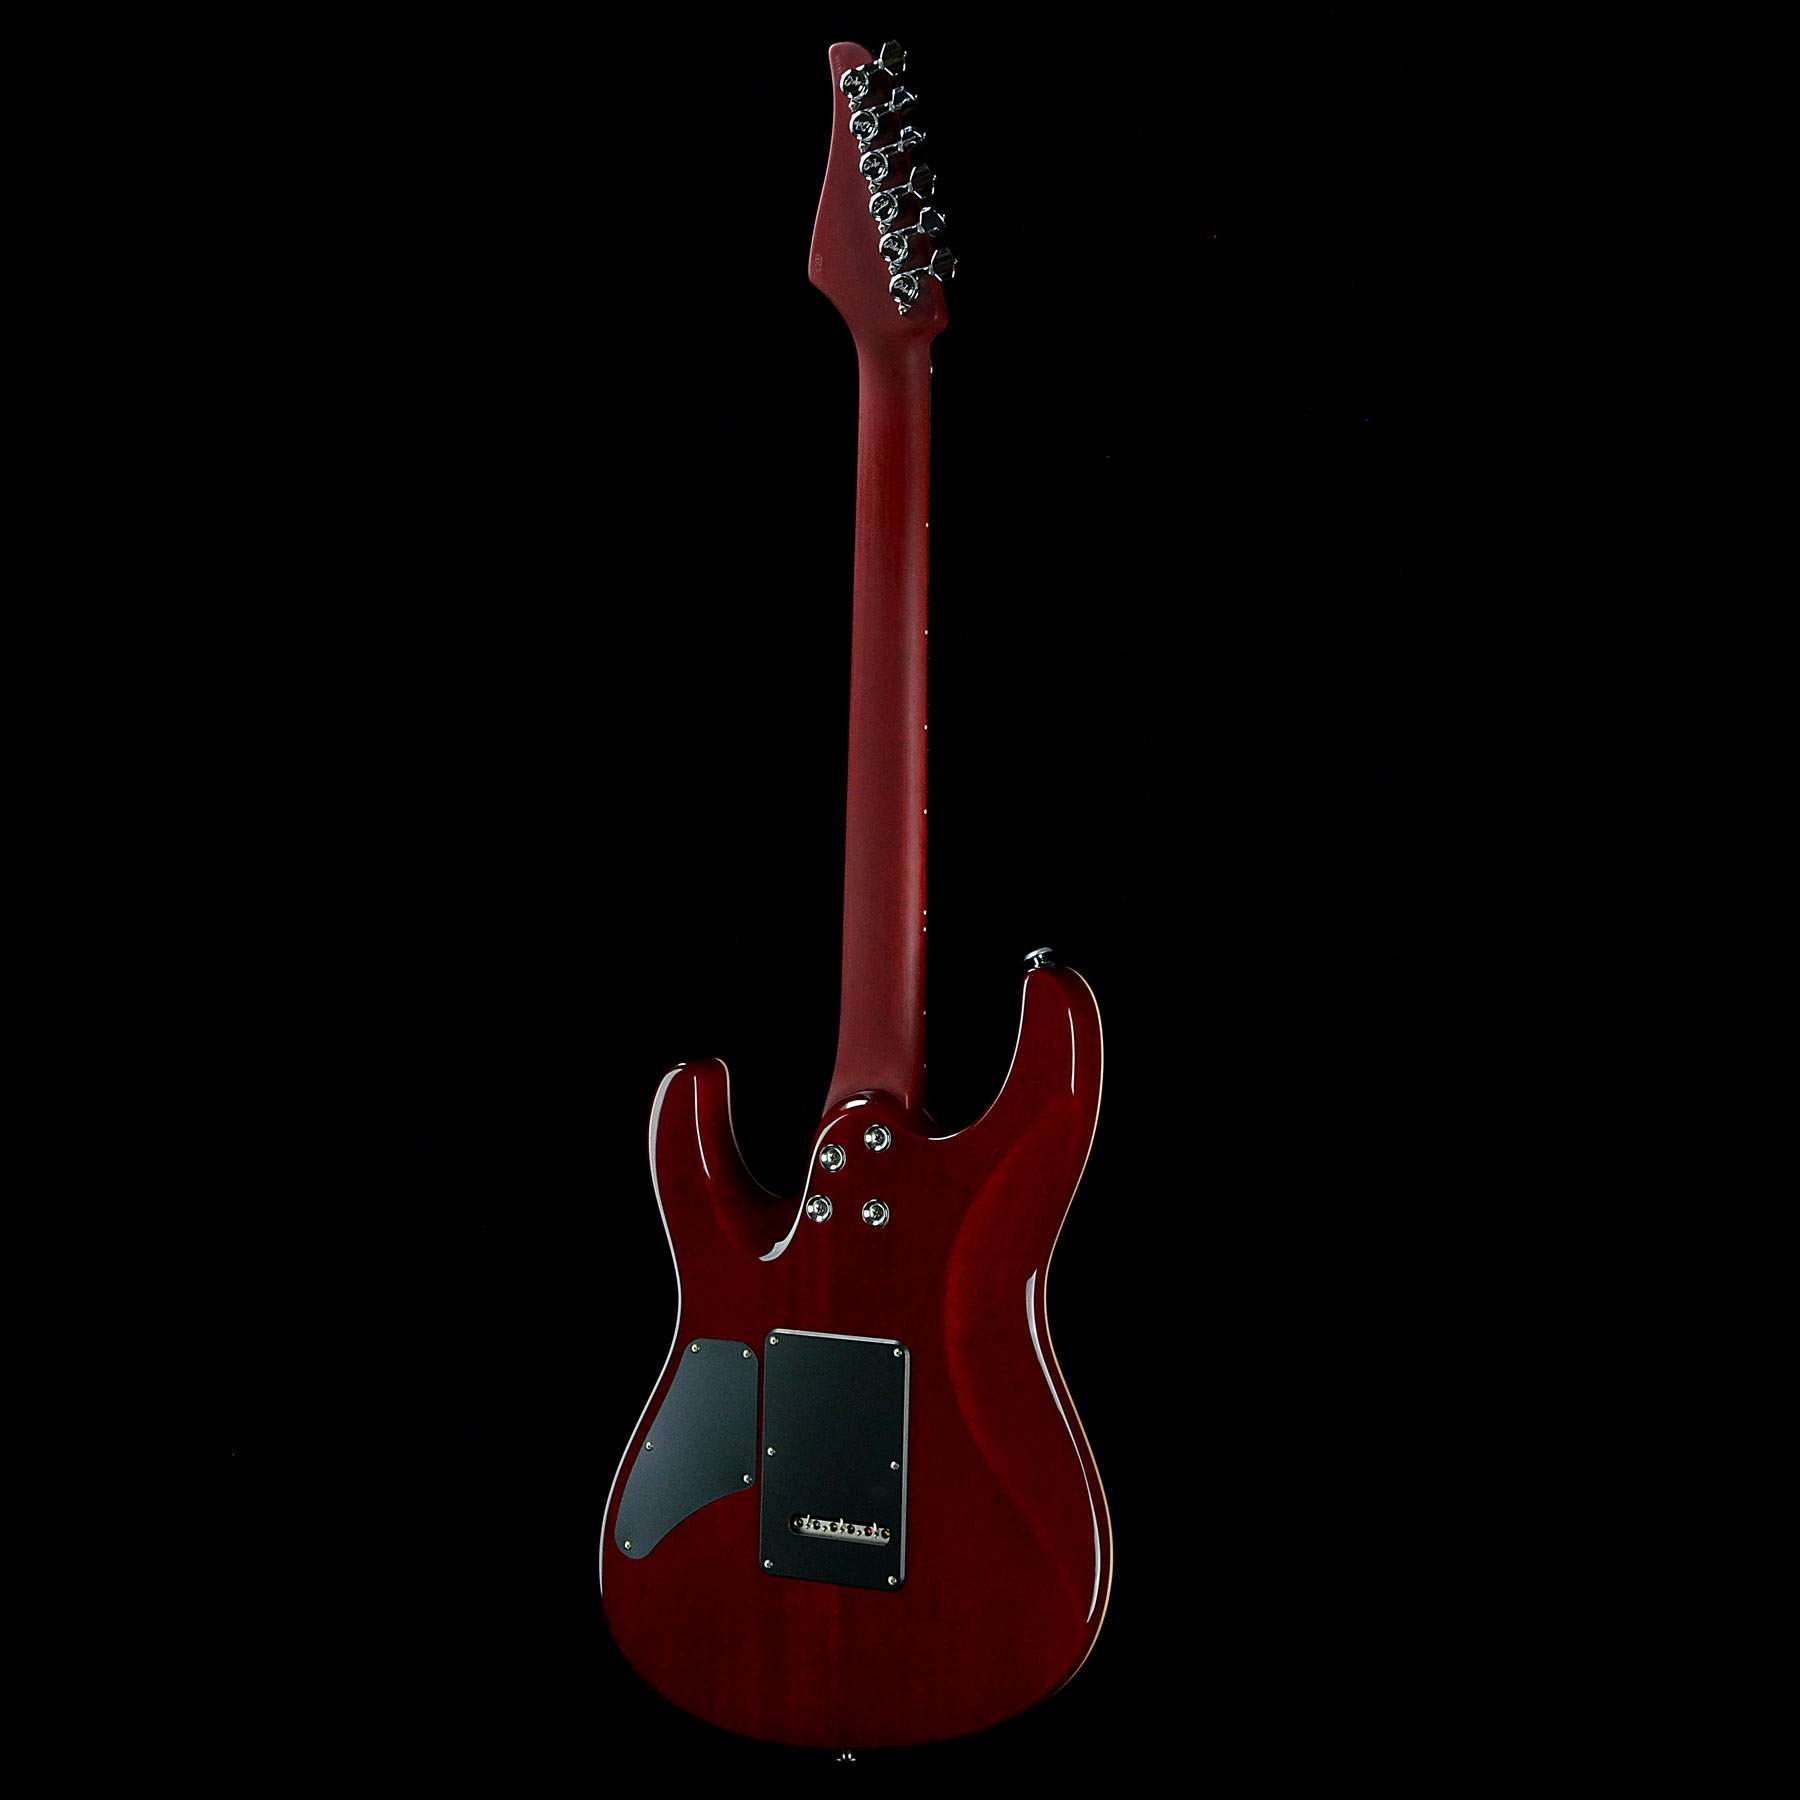 Suhr custom modern gloss black with pete thorn wiring and wild west authentic cheapraybanclubmaster Choice Image